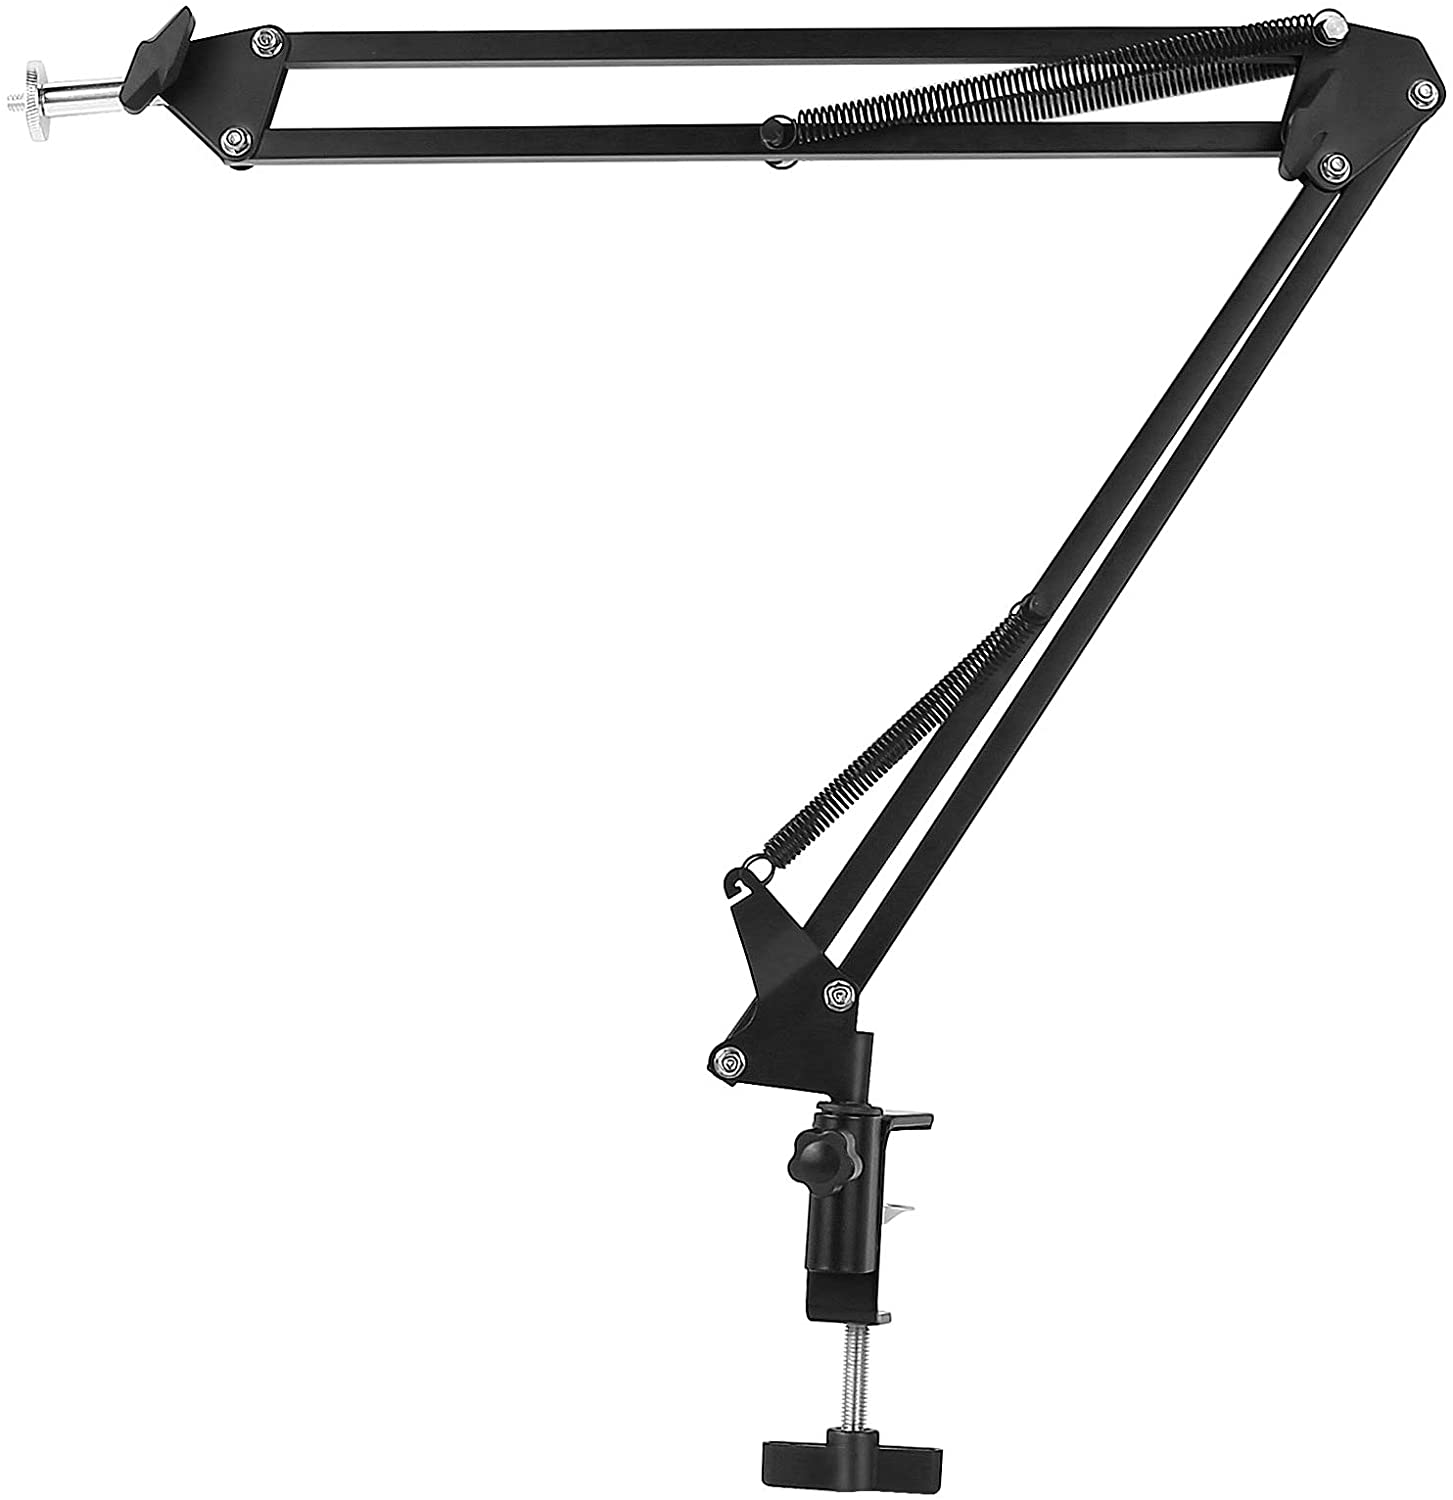 GANNI Microphone Arm Stand, Adjustable Suspension Flexible Boom Scissor Mic Stand with 3/8